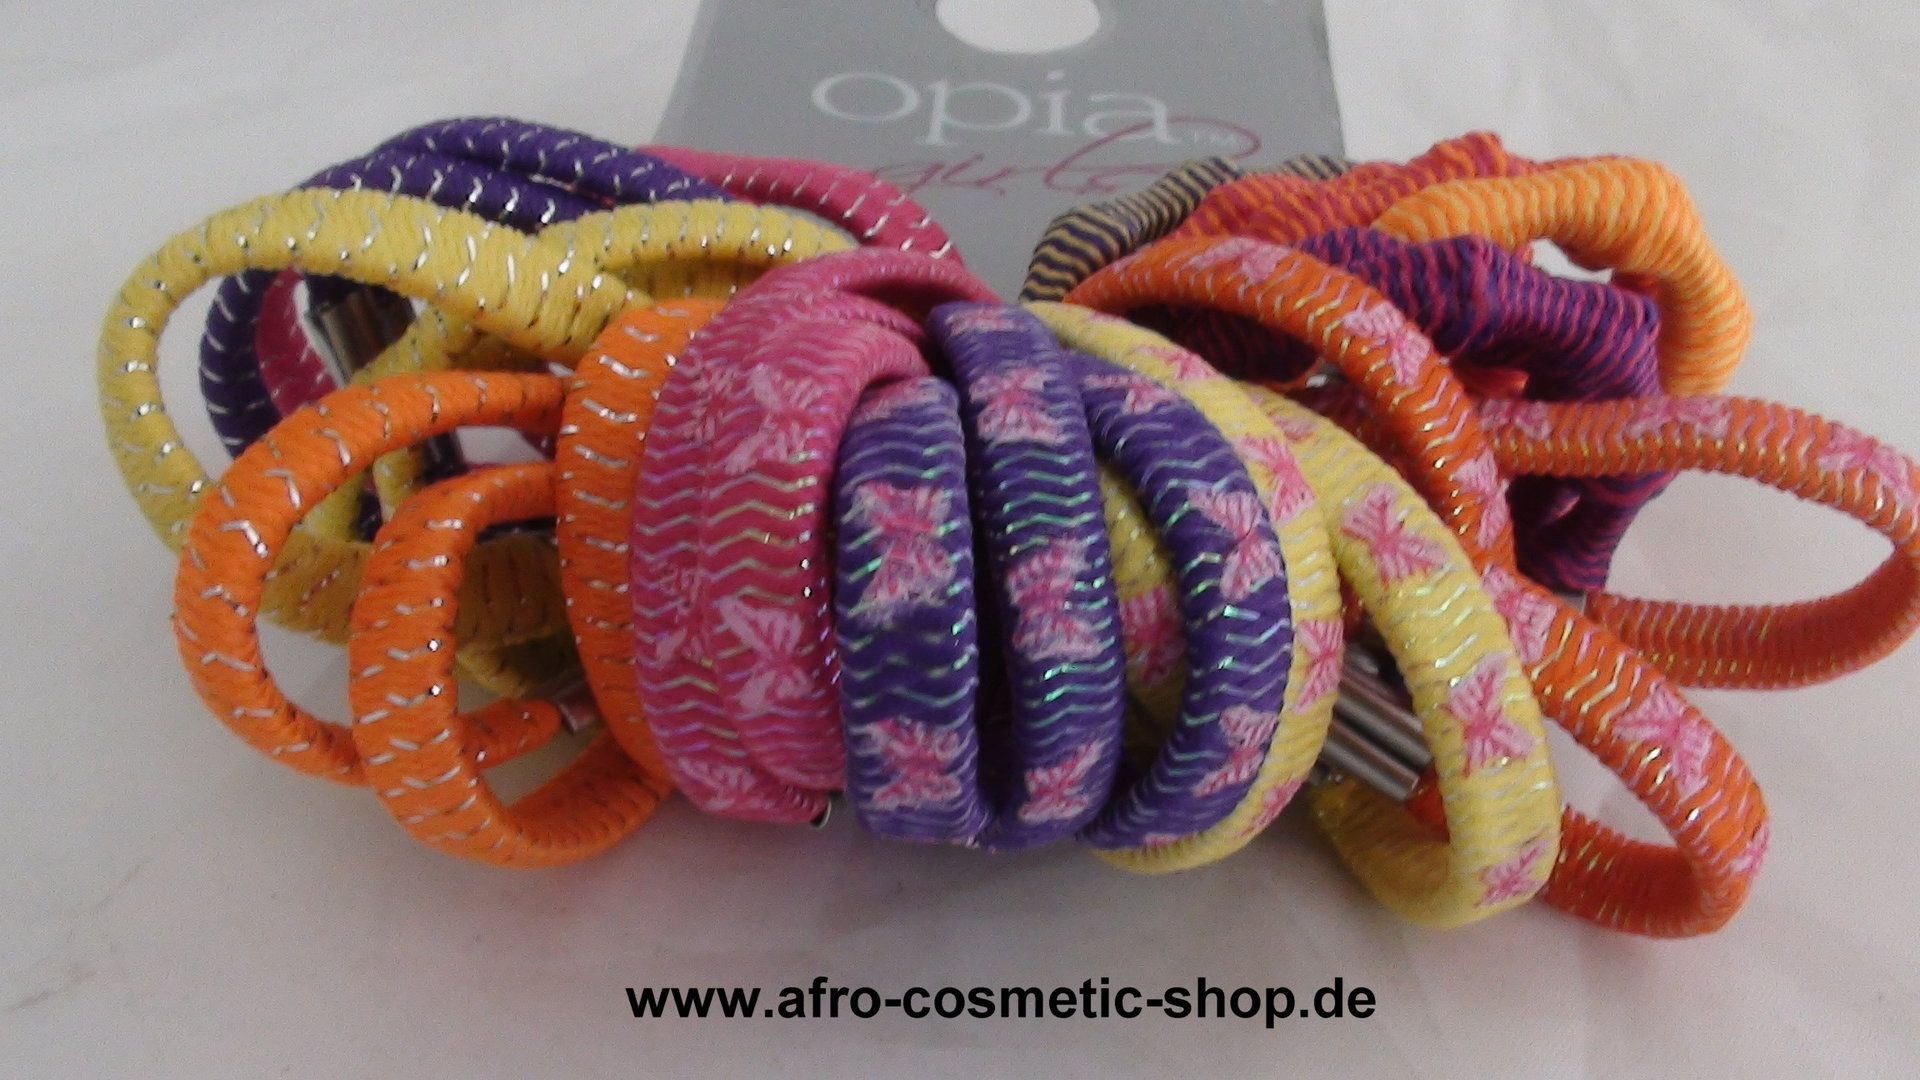 Image Result For African Pride Hair Care Productsa